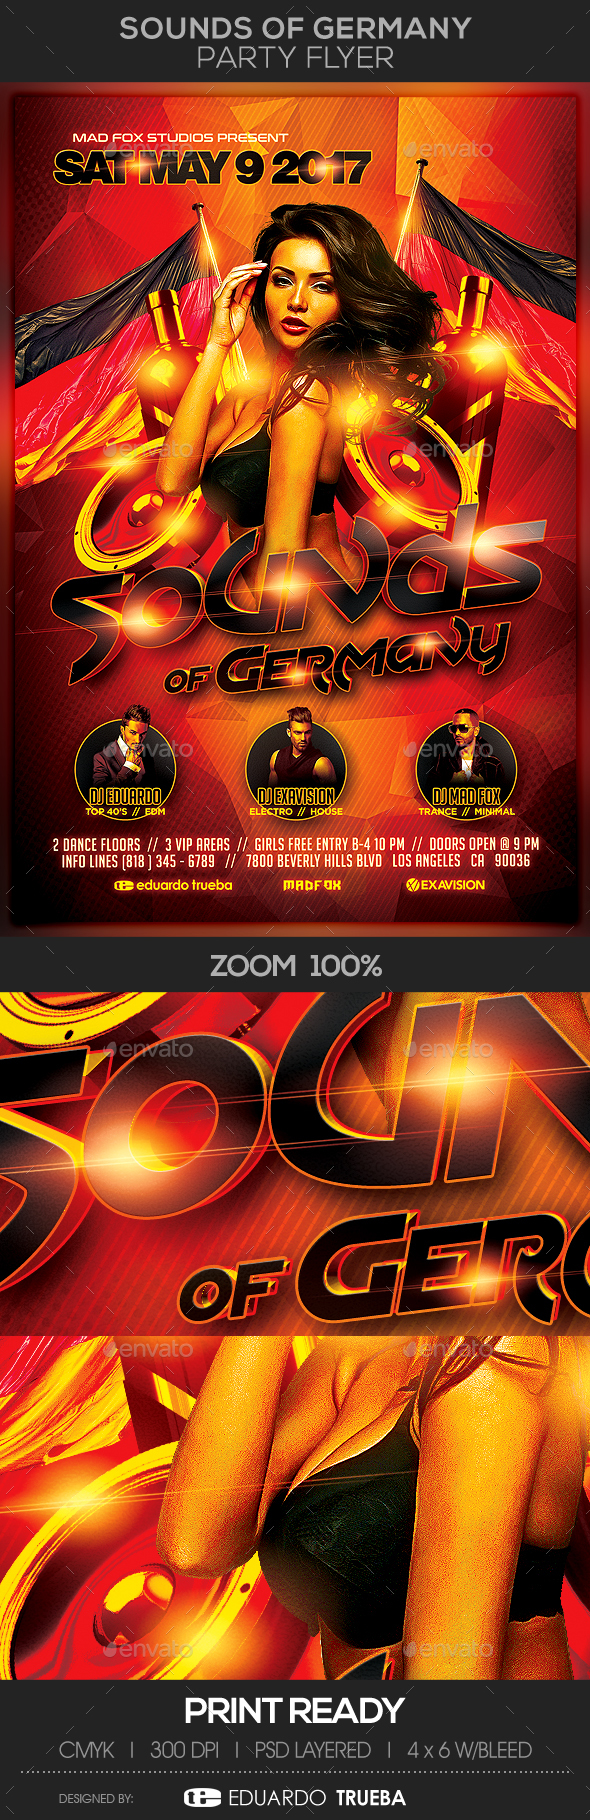 Sounds of Germany Party Flyer - Events Flyers